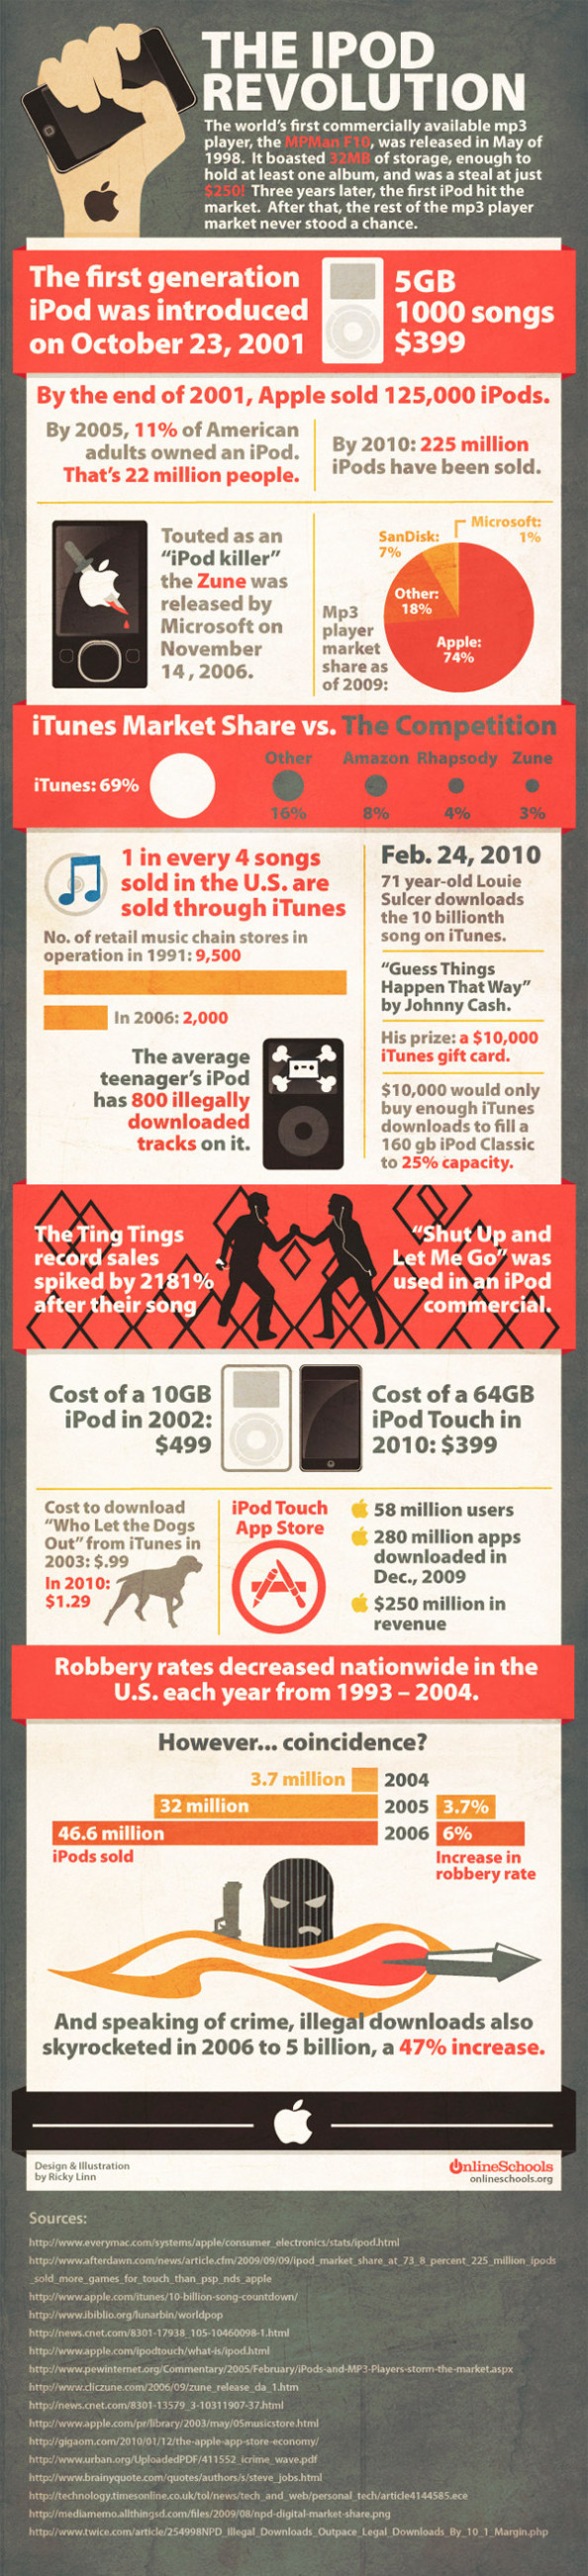 The IPod Revolution  Infographic